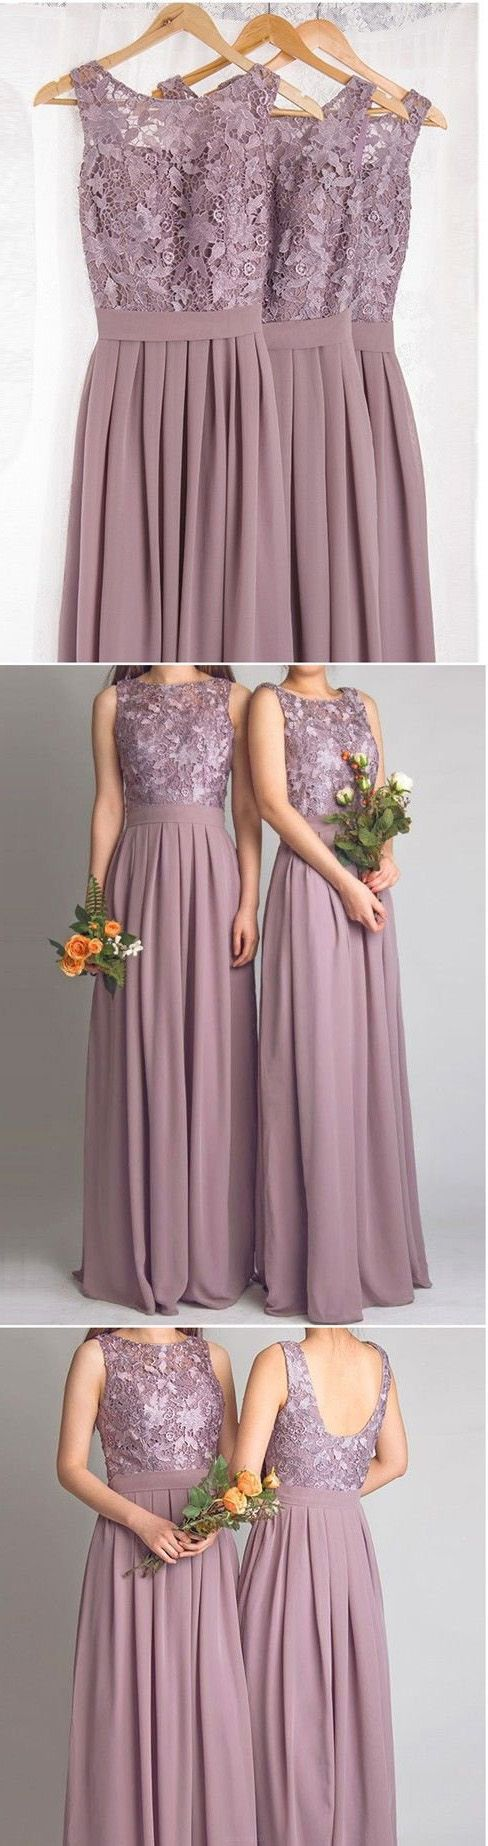 Long Bridesmaid Dresses, Bridesmaid Dresses Cheap, Lace Bridesmaid Dresses Long, Lilac Bridesmaid Dresses, Cheap Bridesmaid Dresses, Long Lace Bridesmaid Dresses, A Line dresses, Lace Bridesmaid Dresses, Long Lace dresses, Zipper Bridesmaid Dresses, A-line/Princess Bridesmaid Dresses, Sleeveless Bridesmaid Dresses